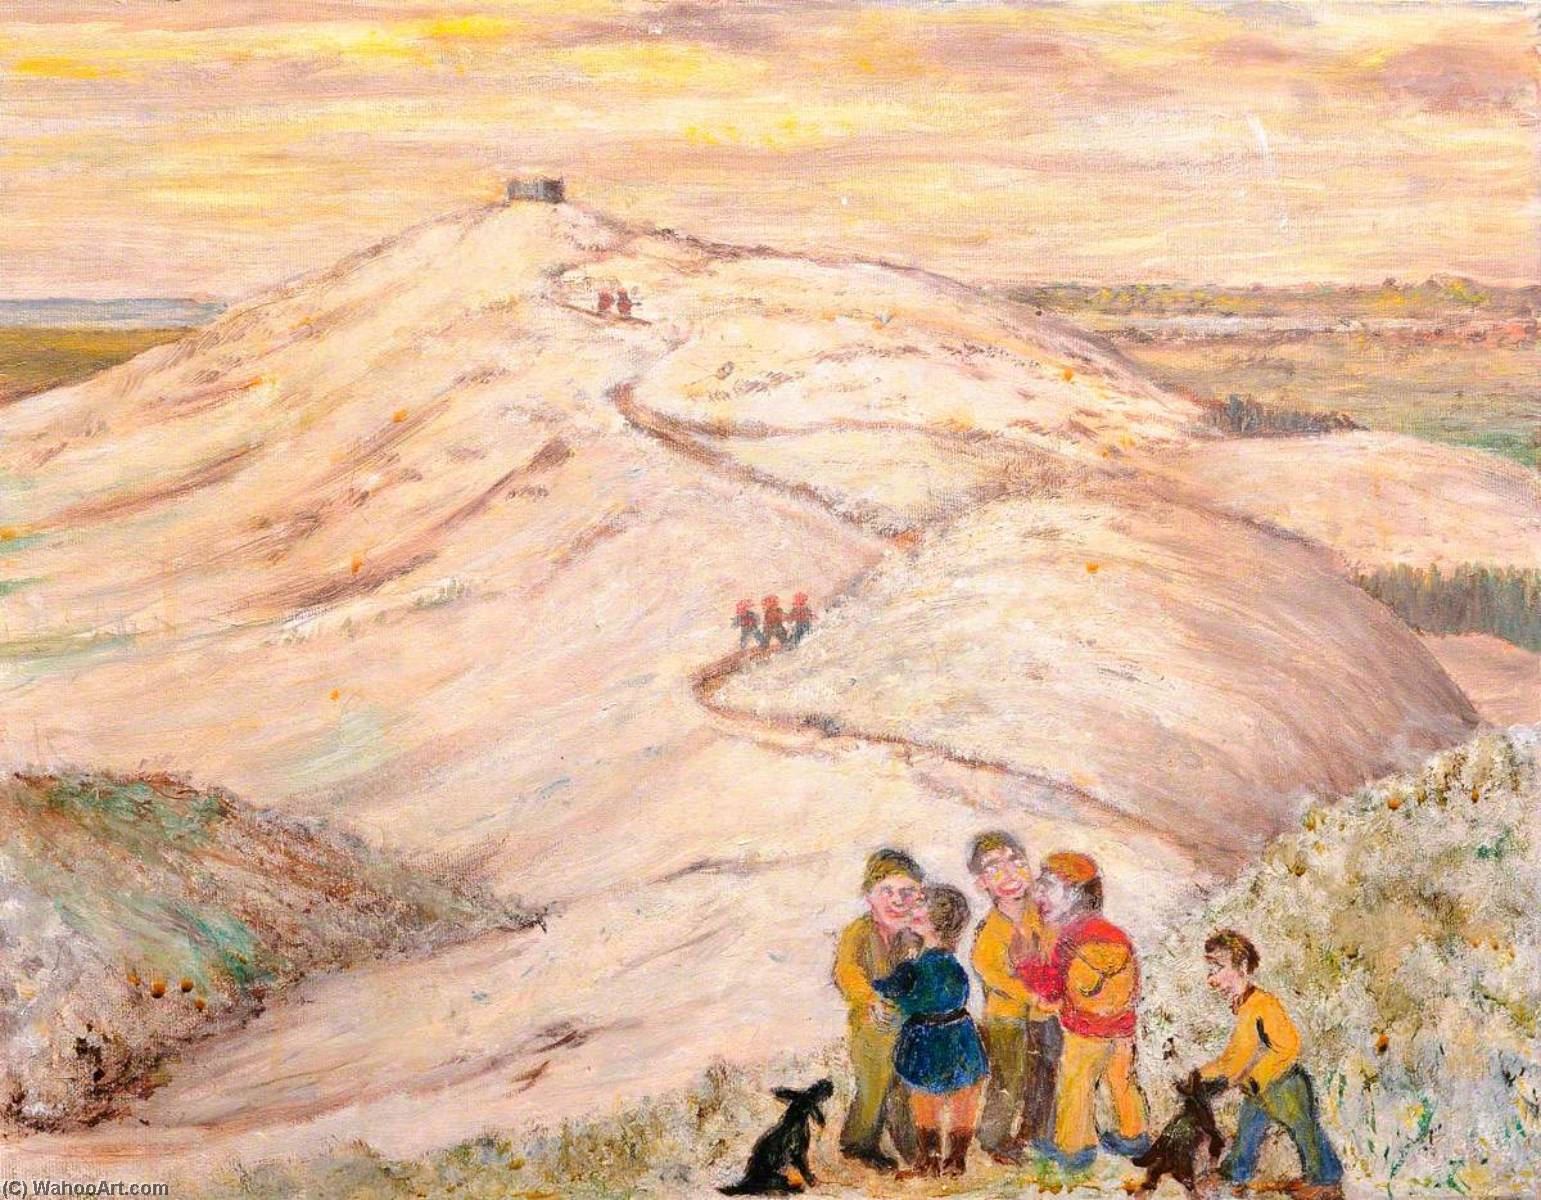 Snow in Late April, 1999, Moel Famau, 'Fancy meetin' you here', Oil On Canvas by James Bentley